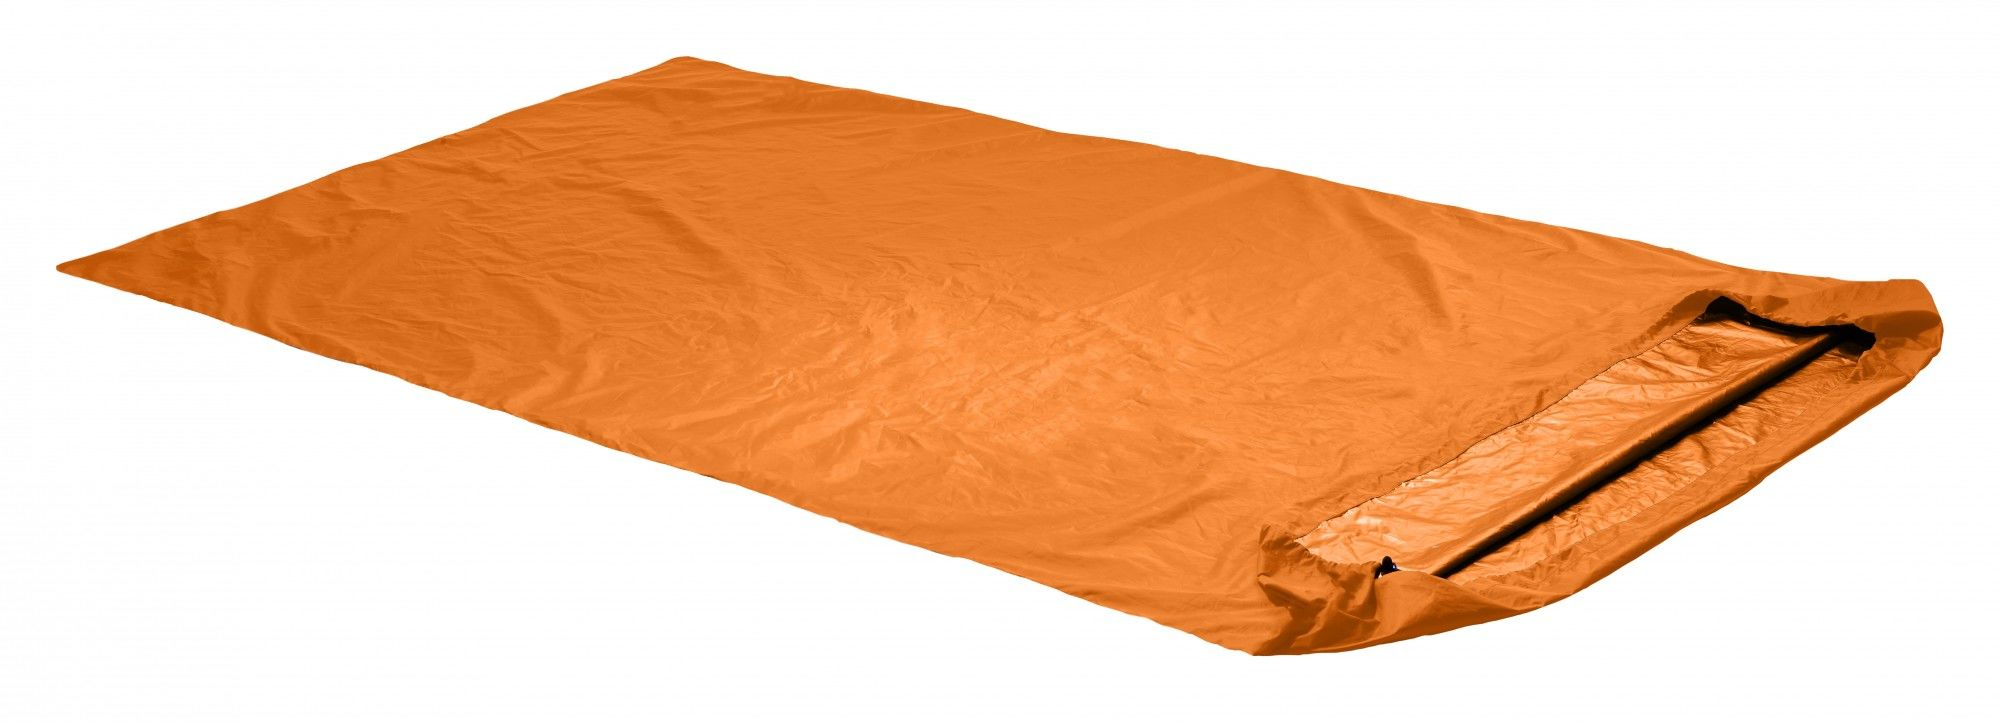 Ortovox Bivy Double Orange, Biwaksack, 230 cm